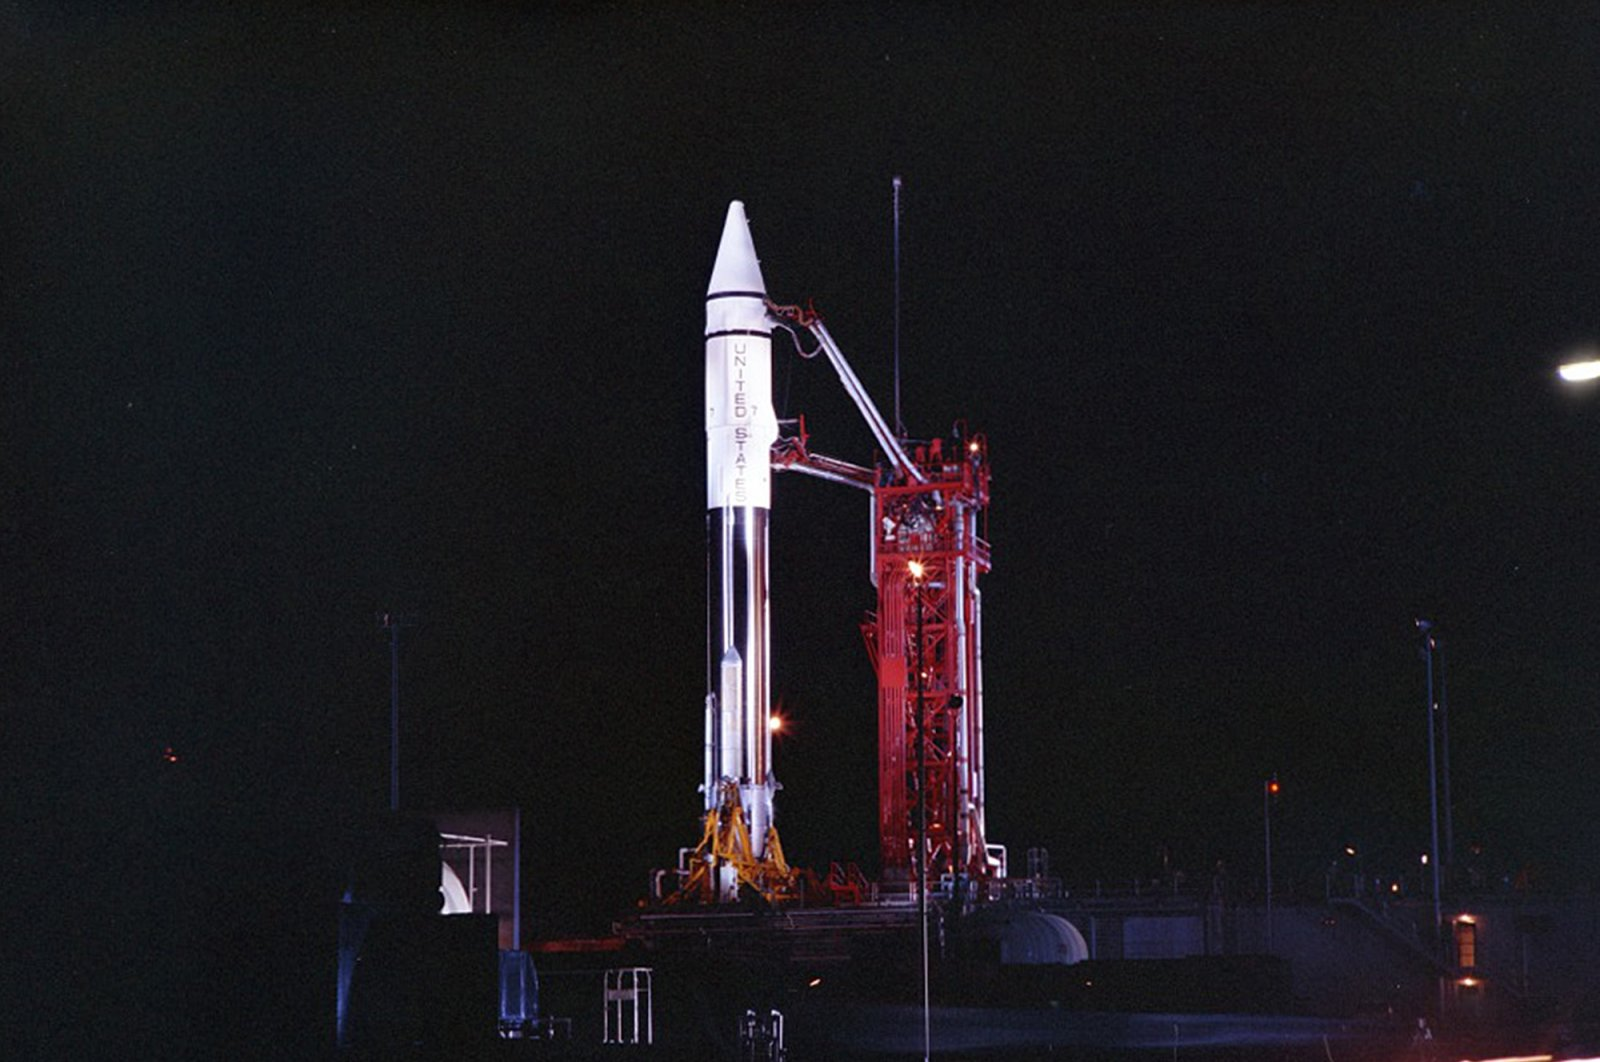 This file photo provided by the San Diego Air and Space Museum shows an Atlas Centaur 7 rocket on the launchpad at Cape Canaveral, Florida, U.S. on Sept. 20, 1966. (AP Photo)